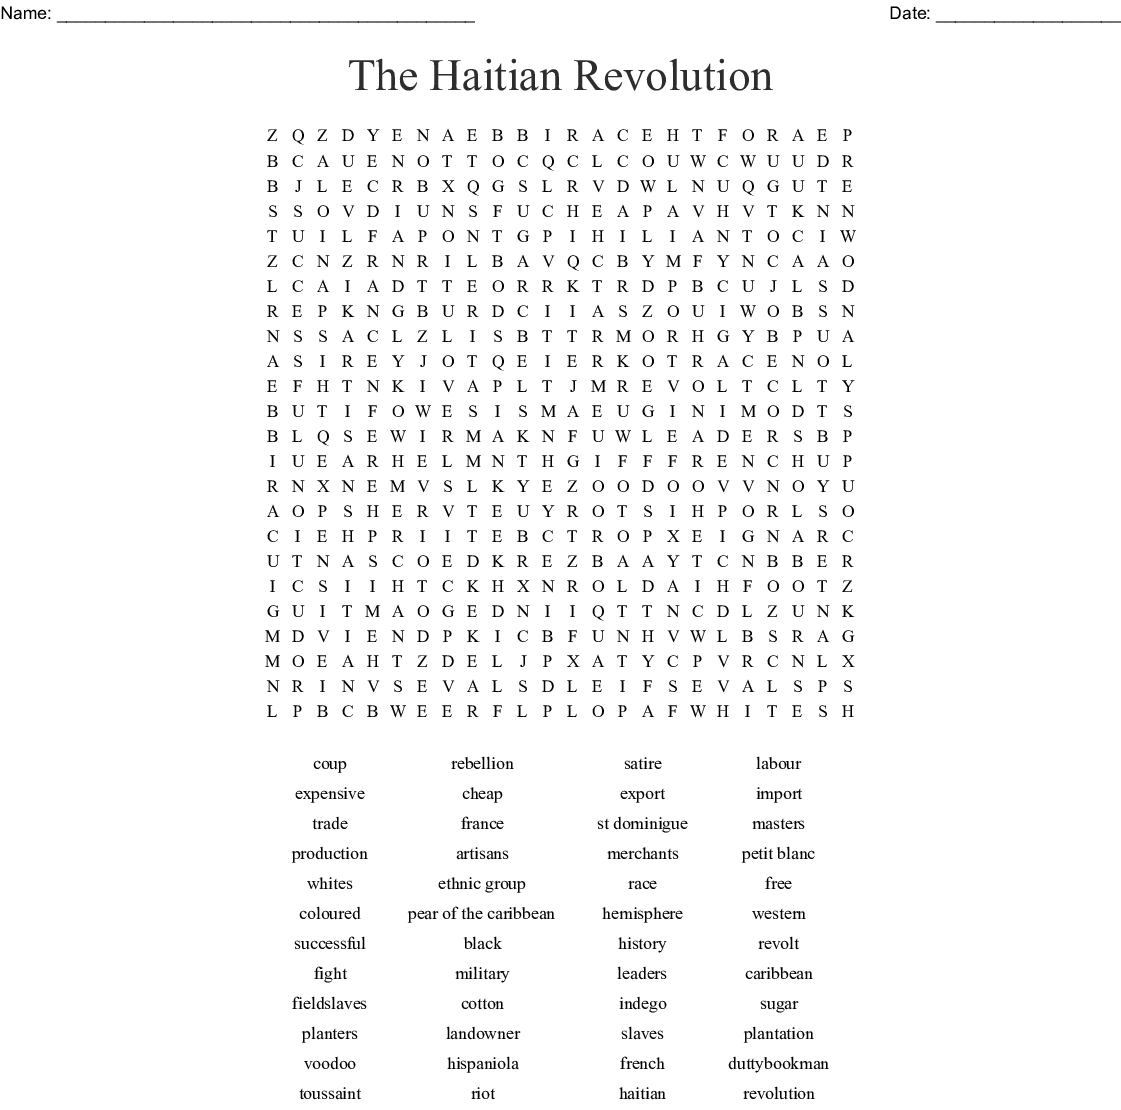 The Haitian Revolution Word Search